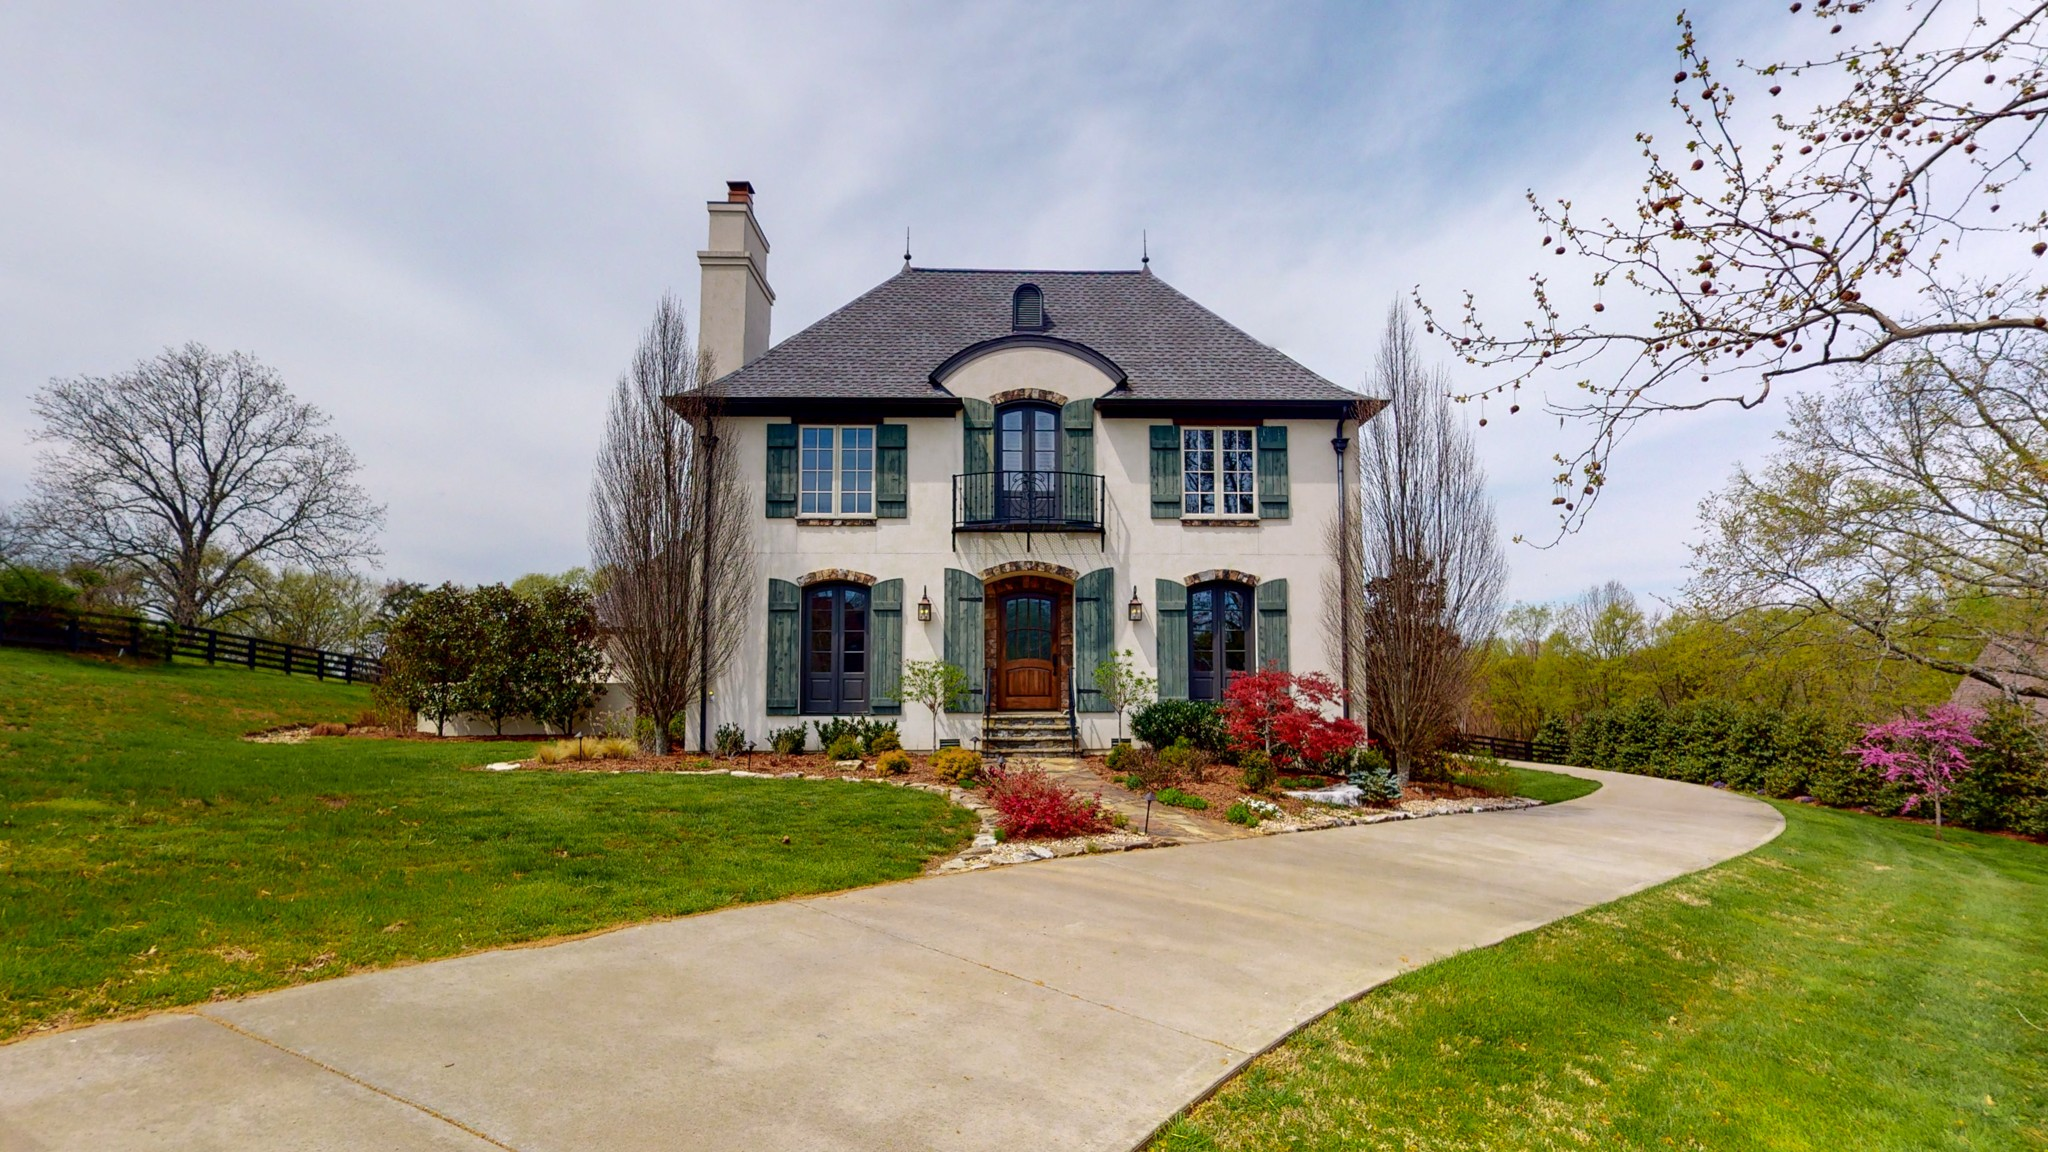 French Country Estate on 3.39 acres. Country setting 12 min to Cool Springs. Beautiful kitchen w/ separate fridge  and freezer. Walk-in pantry. Butler's pantry w/ ice machine & wine fridge. Master suite w/ vaulted ceilings, marble shower, & freestanding tub. Large bonus room. Oversized rooms. Thoughtful, open floor plan. Ideal for family gatherings & entertaining. Hardwood floors throughout. Wide, arched doorways. Resort pool w/ outdoor fireplace. Wine porch. Rain garden. Fenced-in backyard.